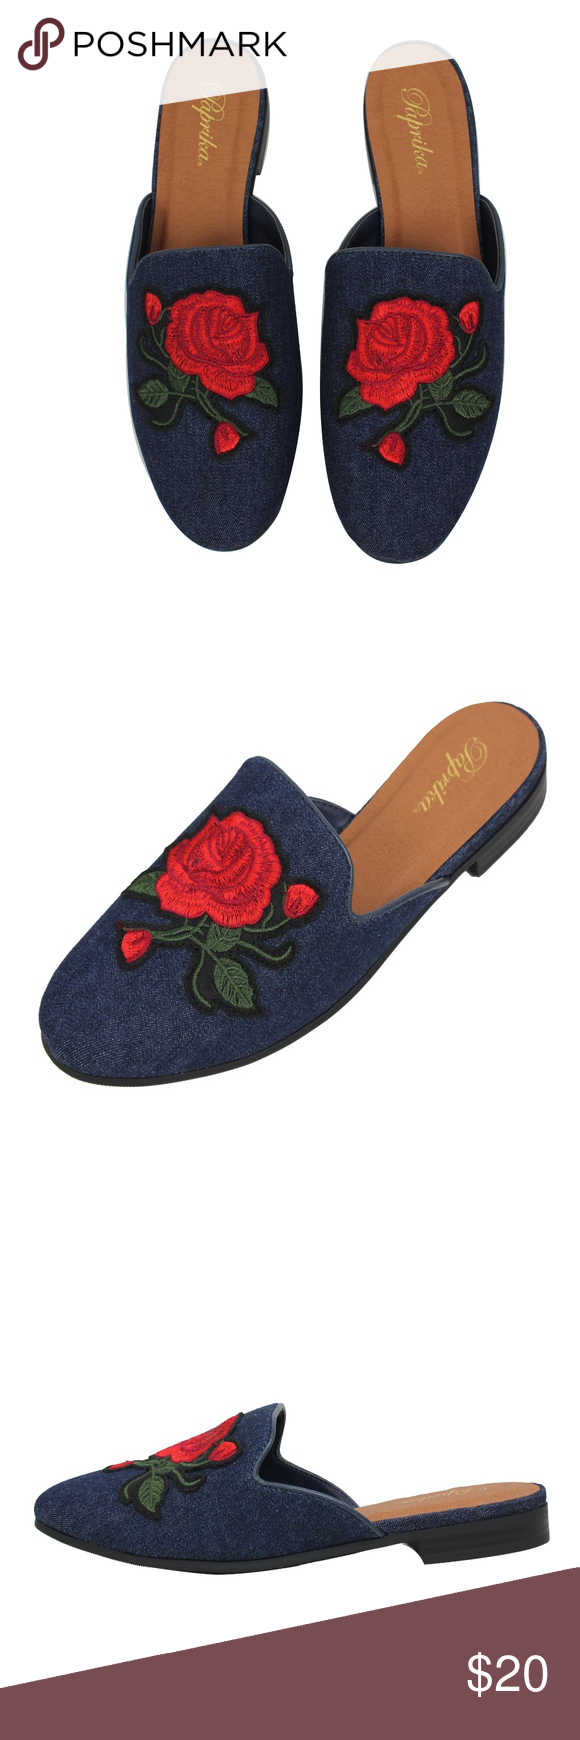 b836098bbf6 Blue Rose Embroidery Backless Slip On Loafer Mule Blue embroidery slip on  loafer. Model is